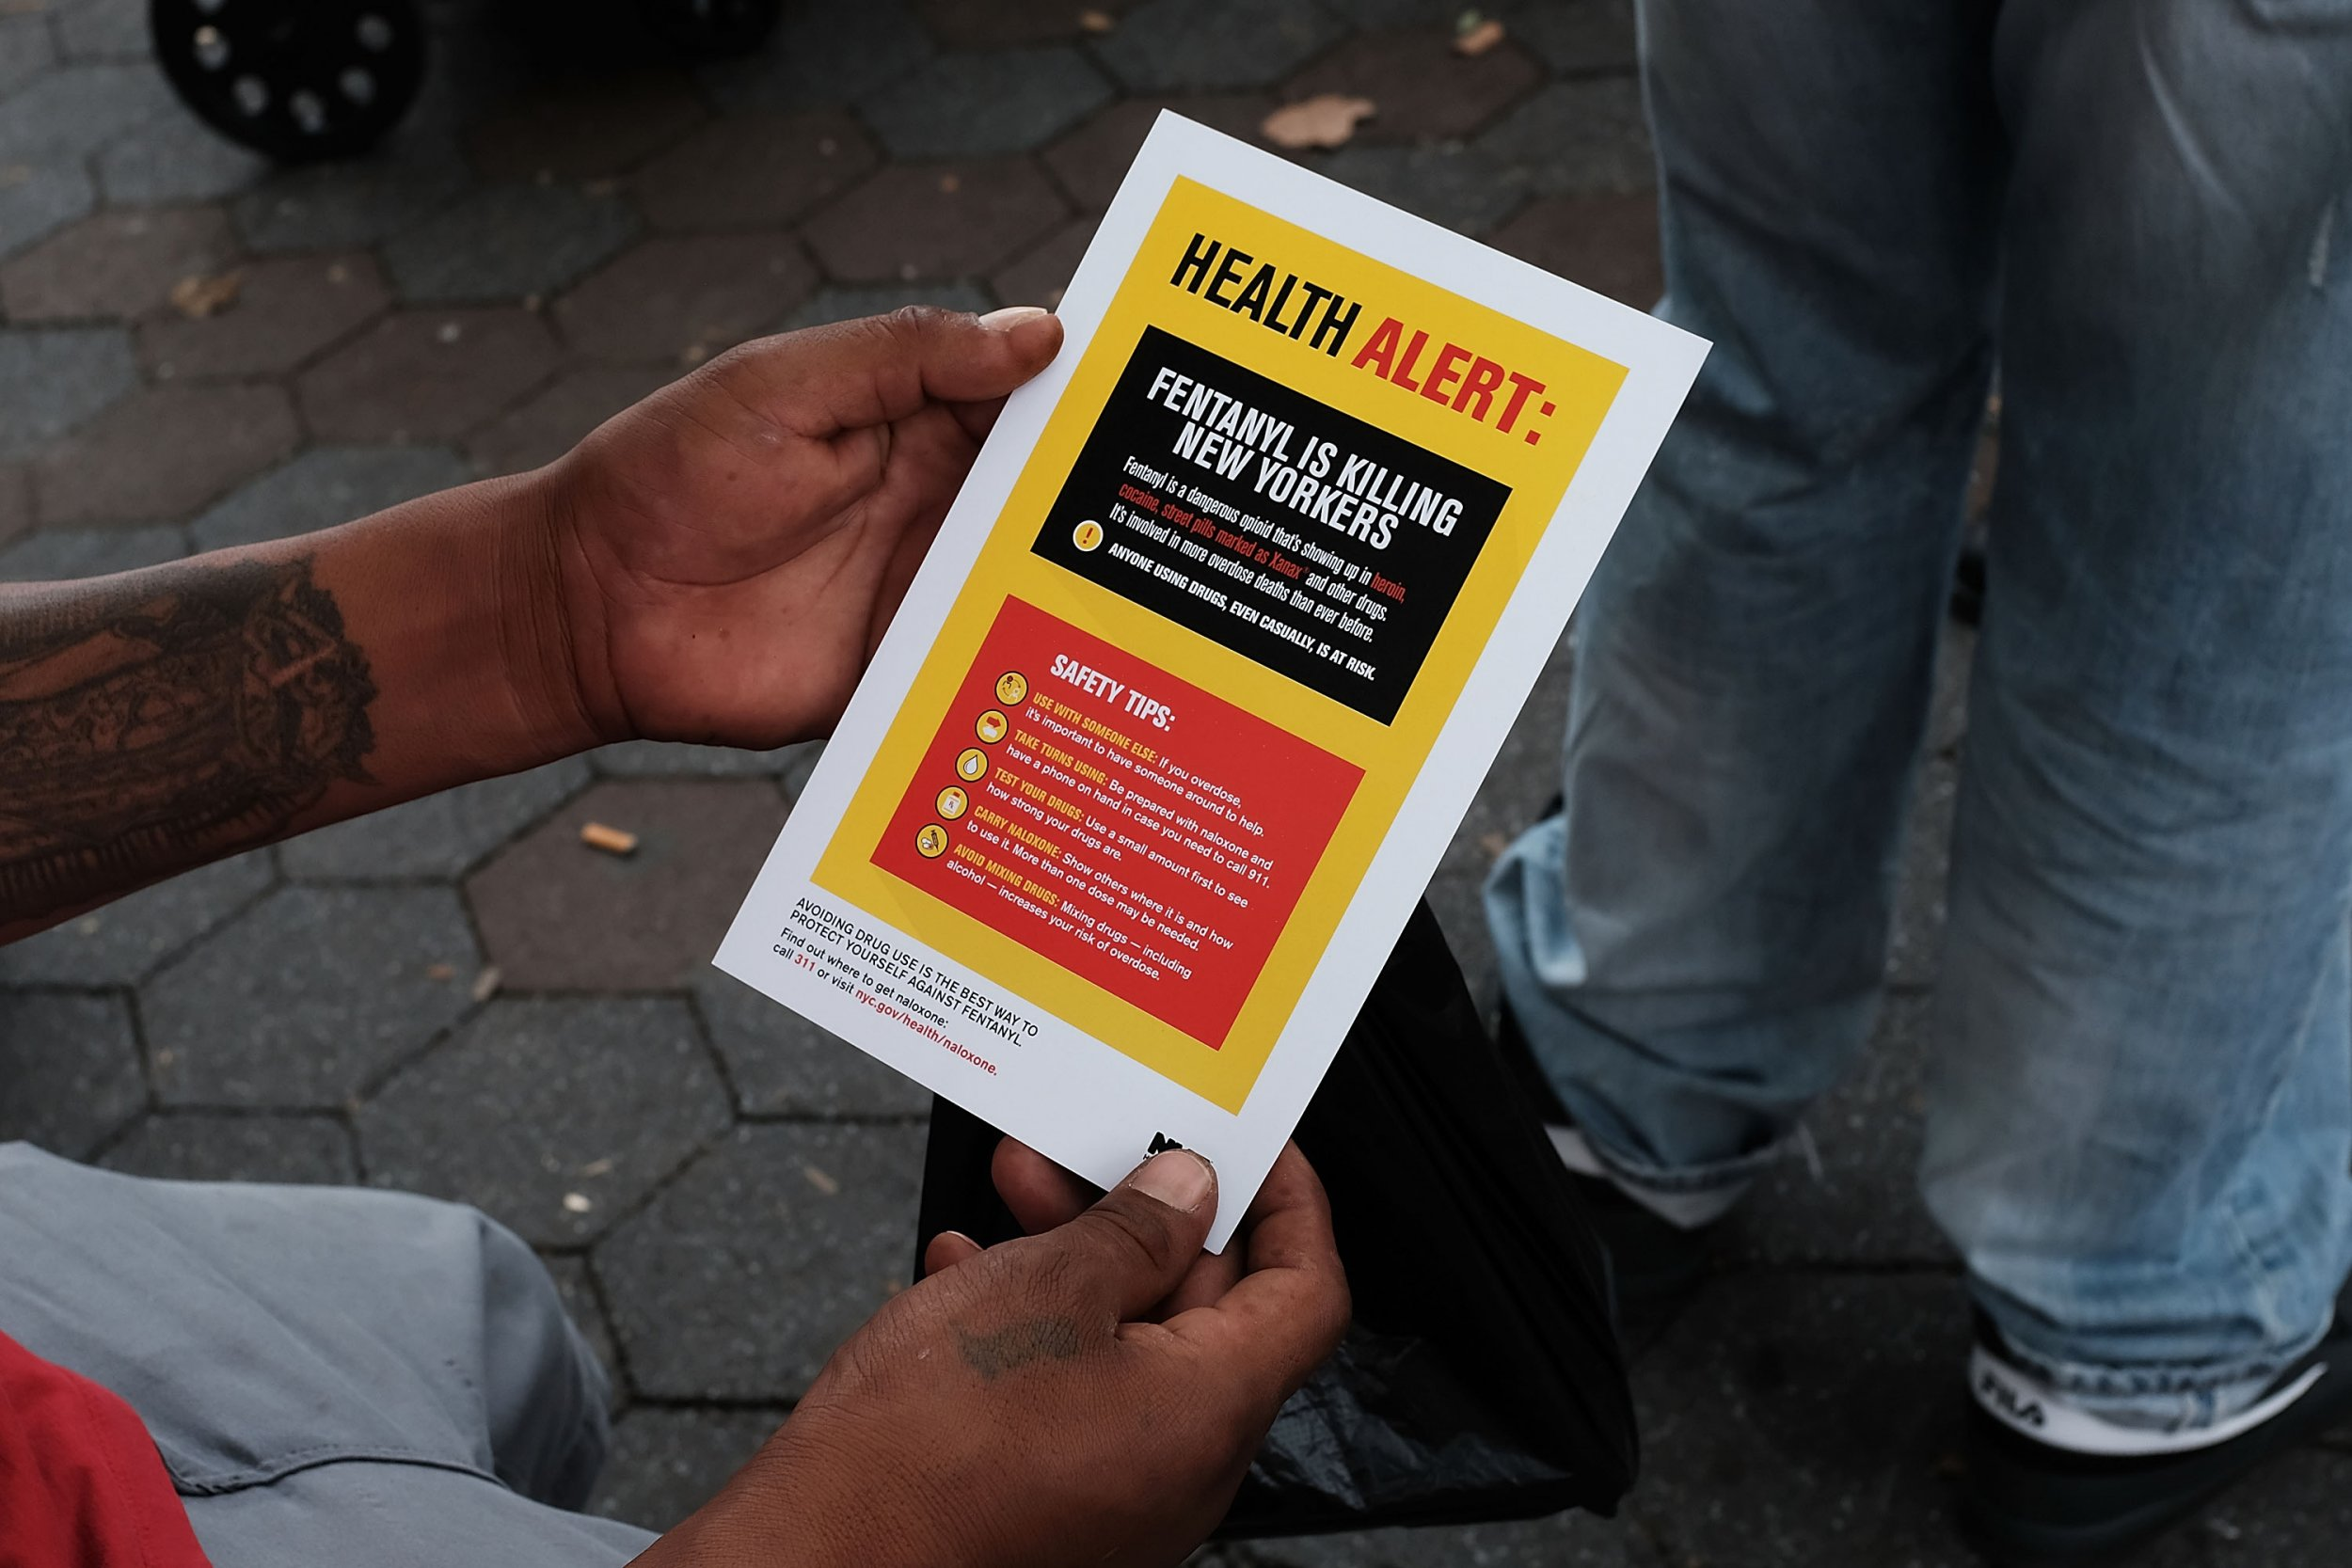 fentanyl is killing NYers